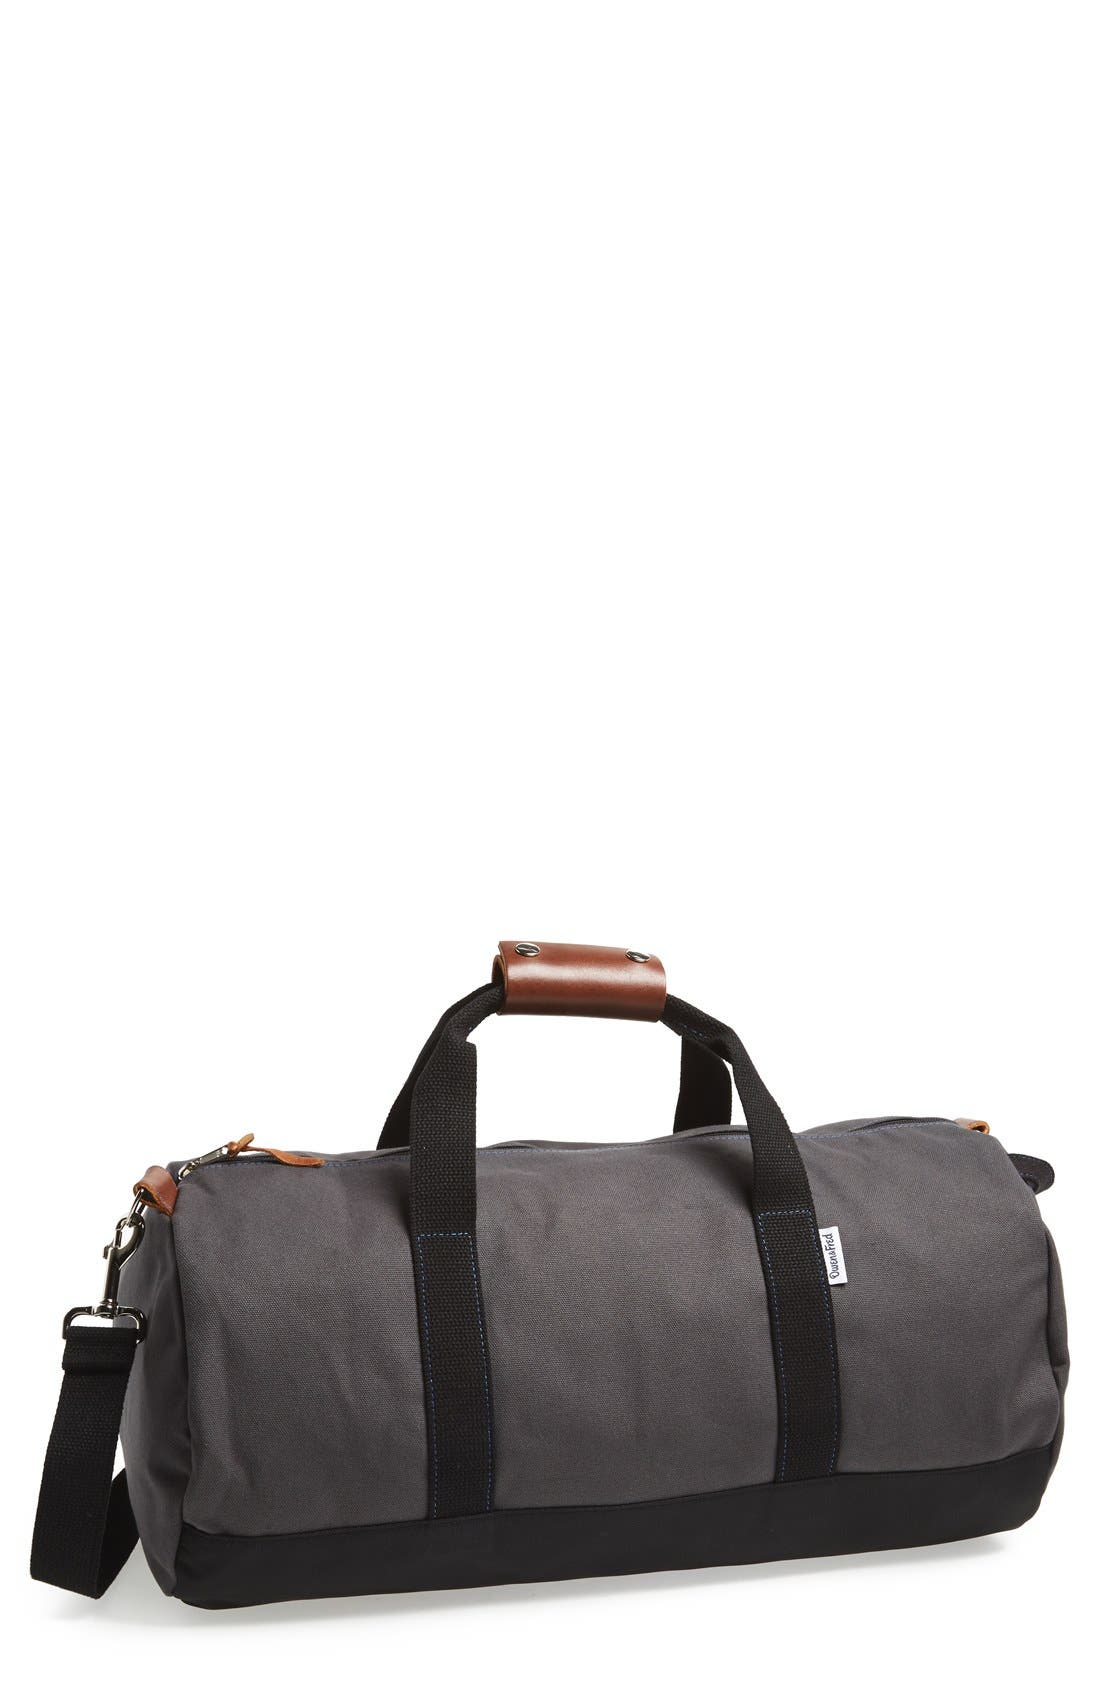 Main Image - Owen & Fred 'Work Hard, Play Hard' Duffel Bag